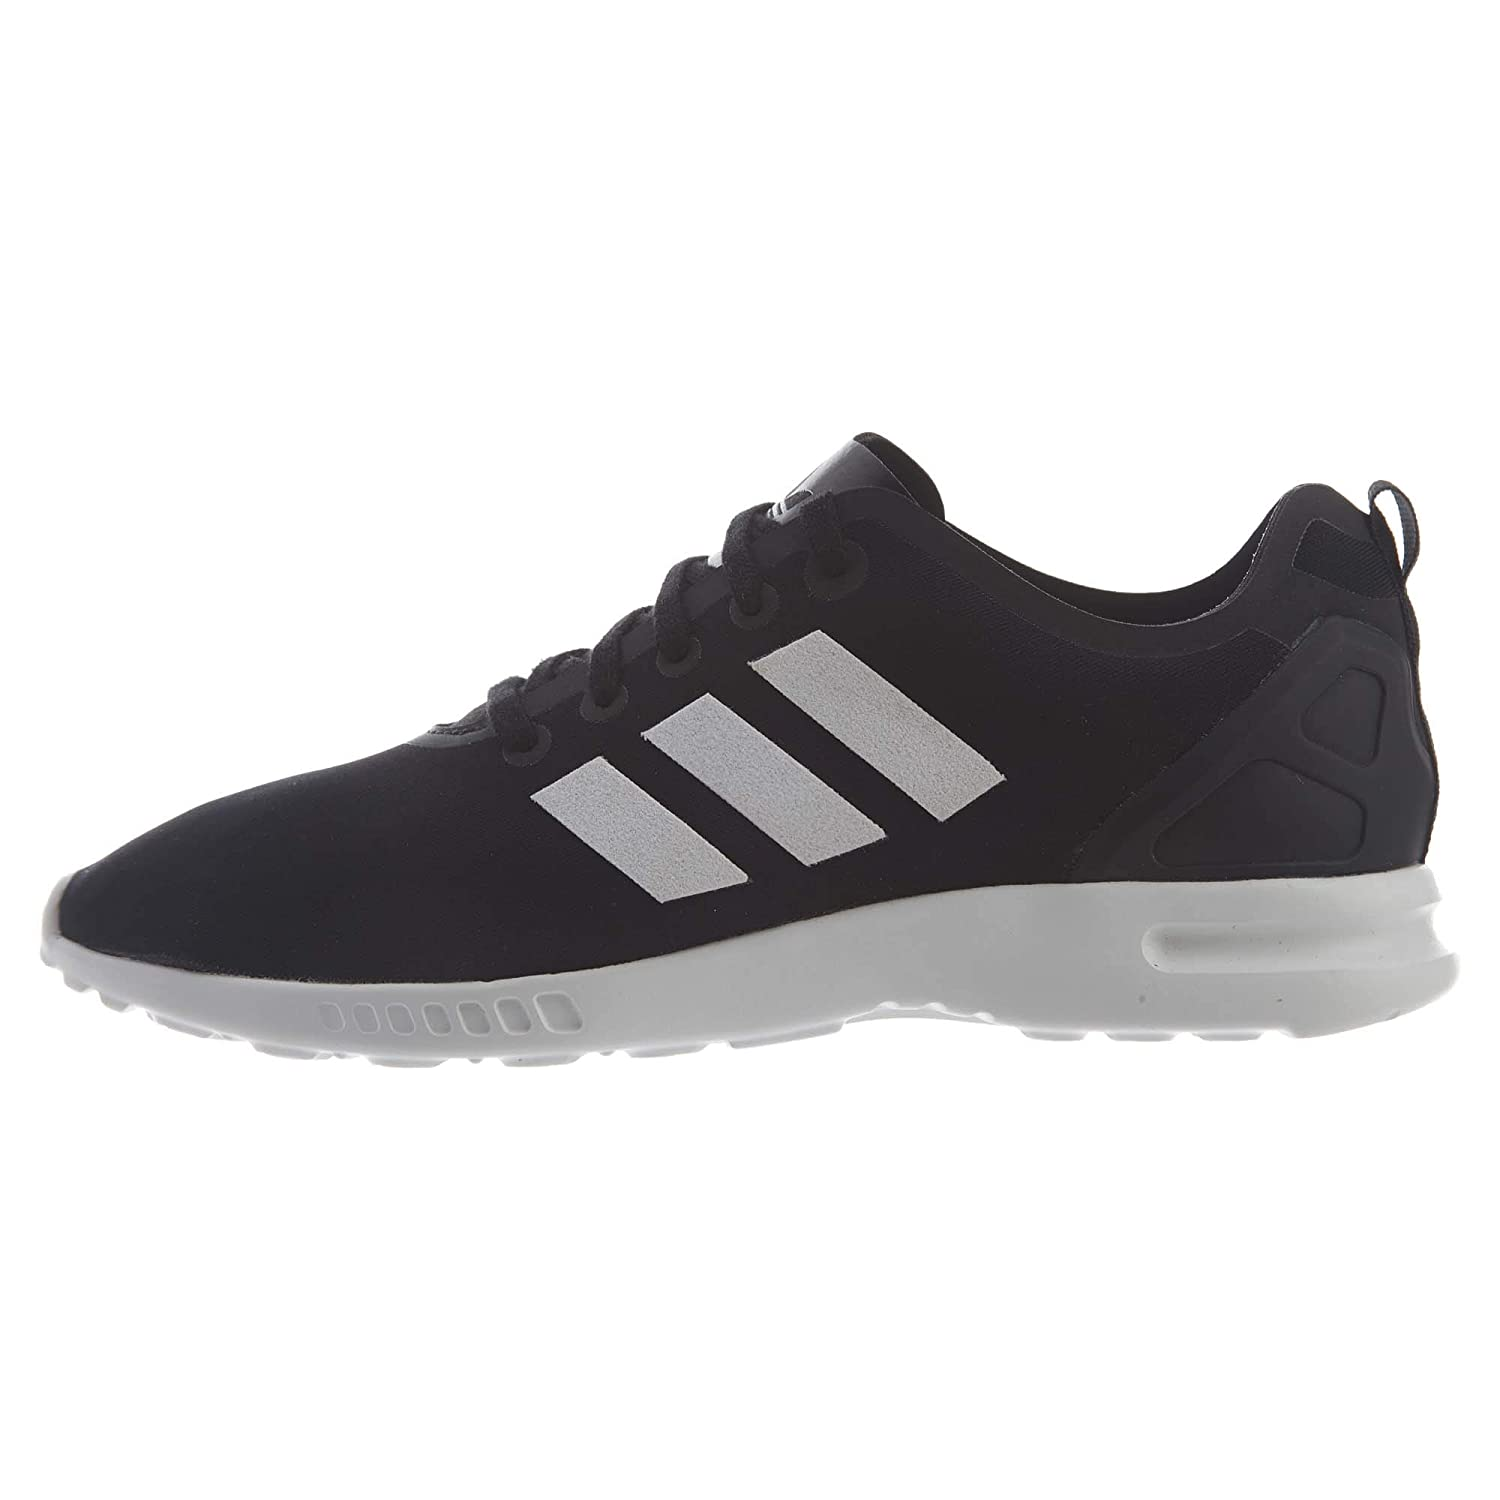 adidas Womens Originals ZX Flux Smooth Shoes #S82884